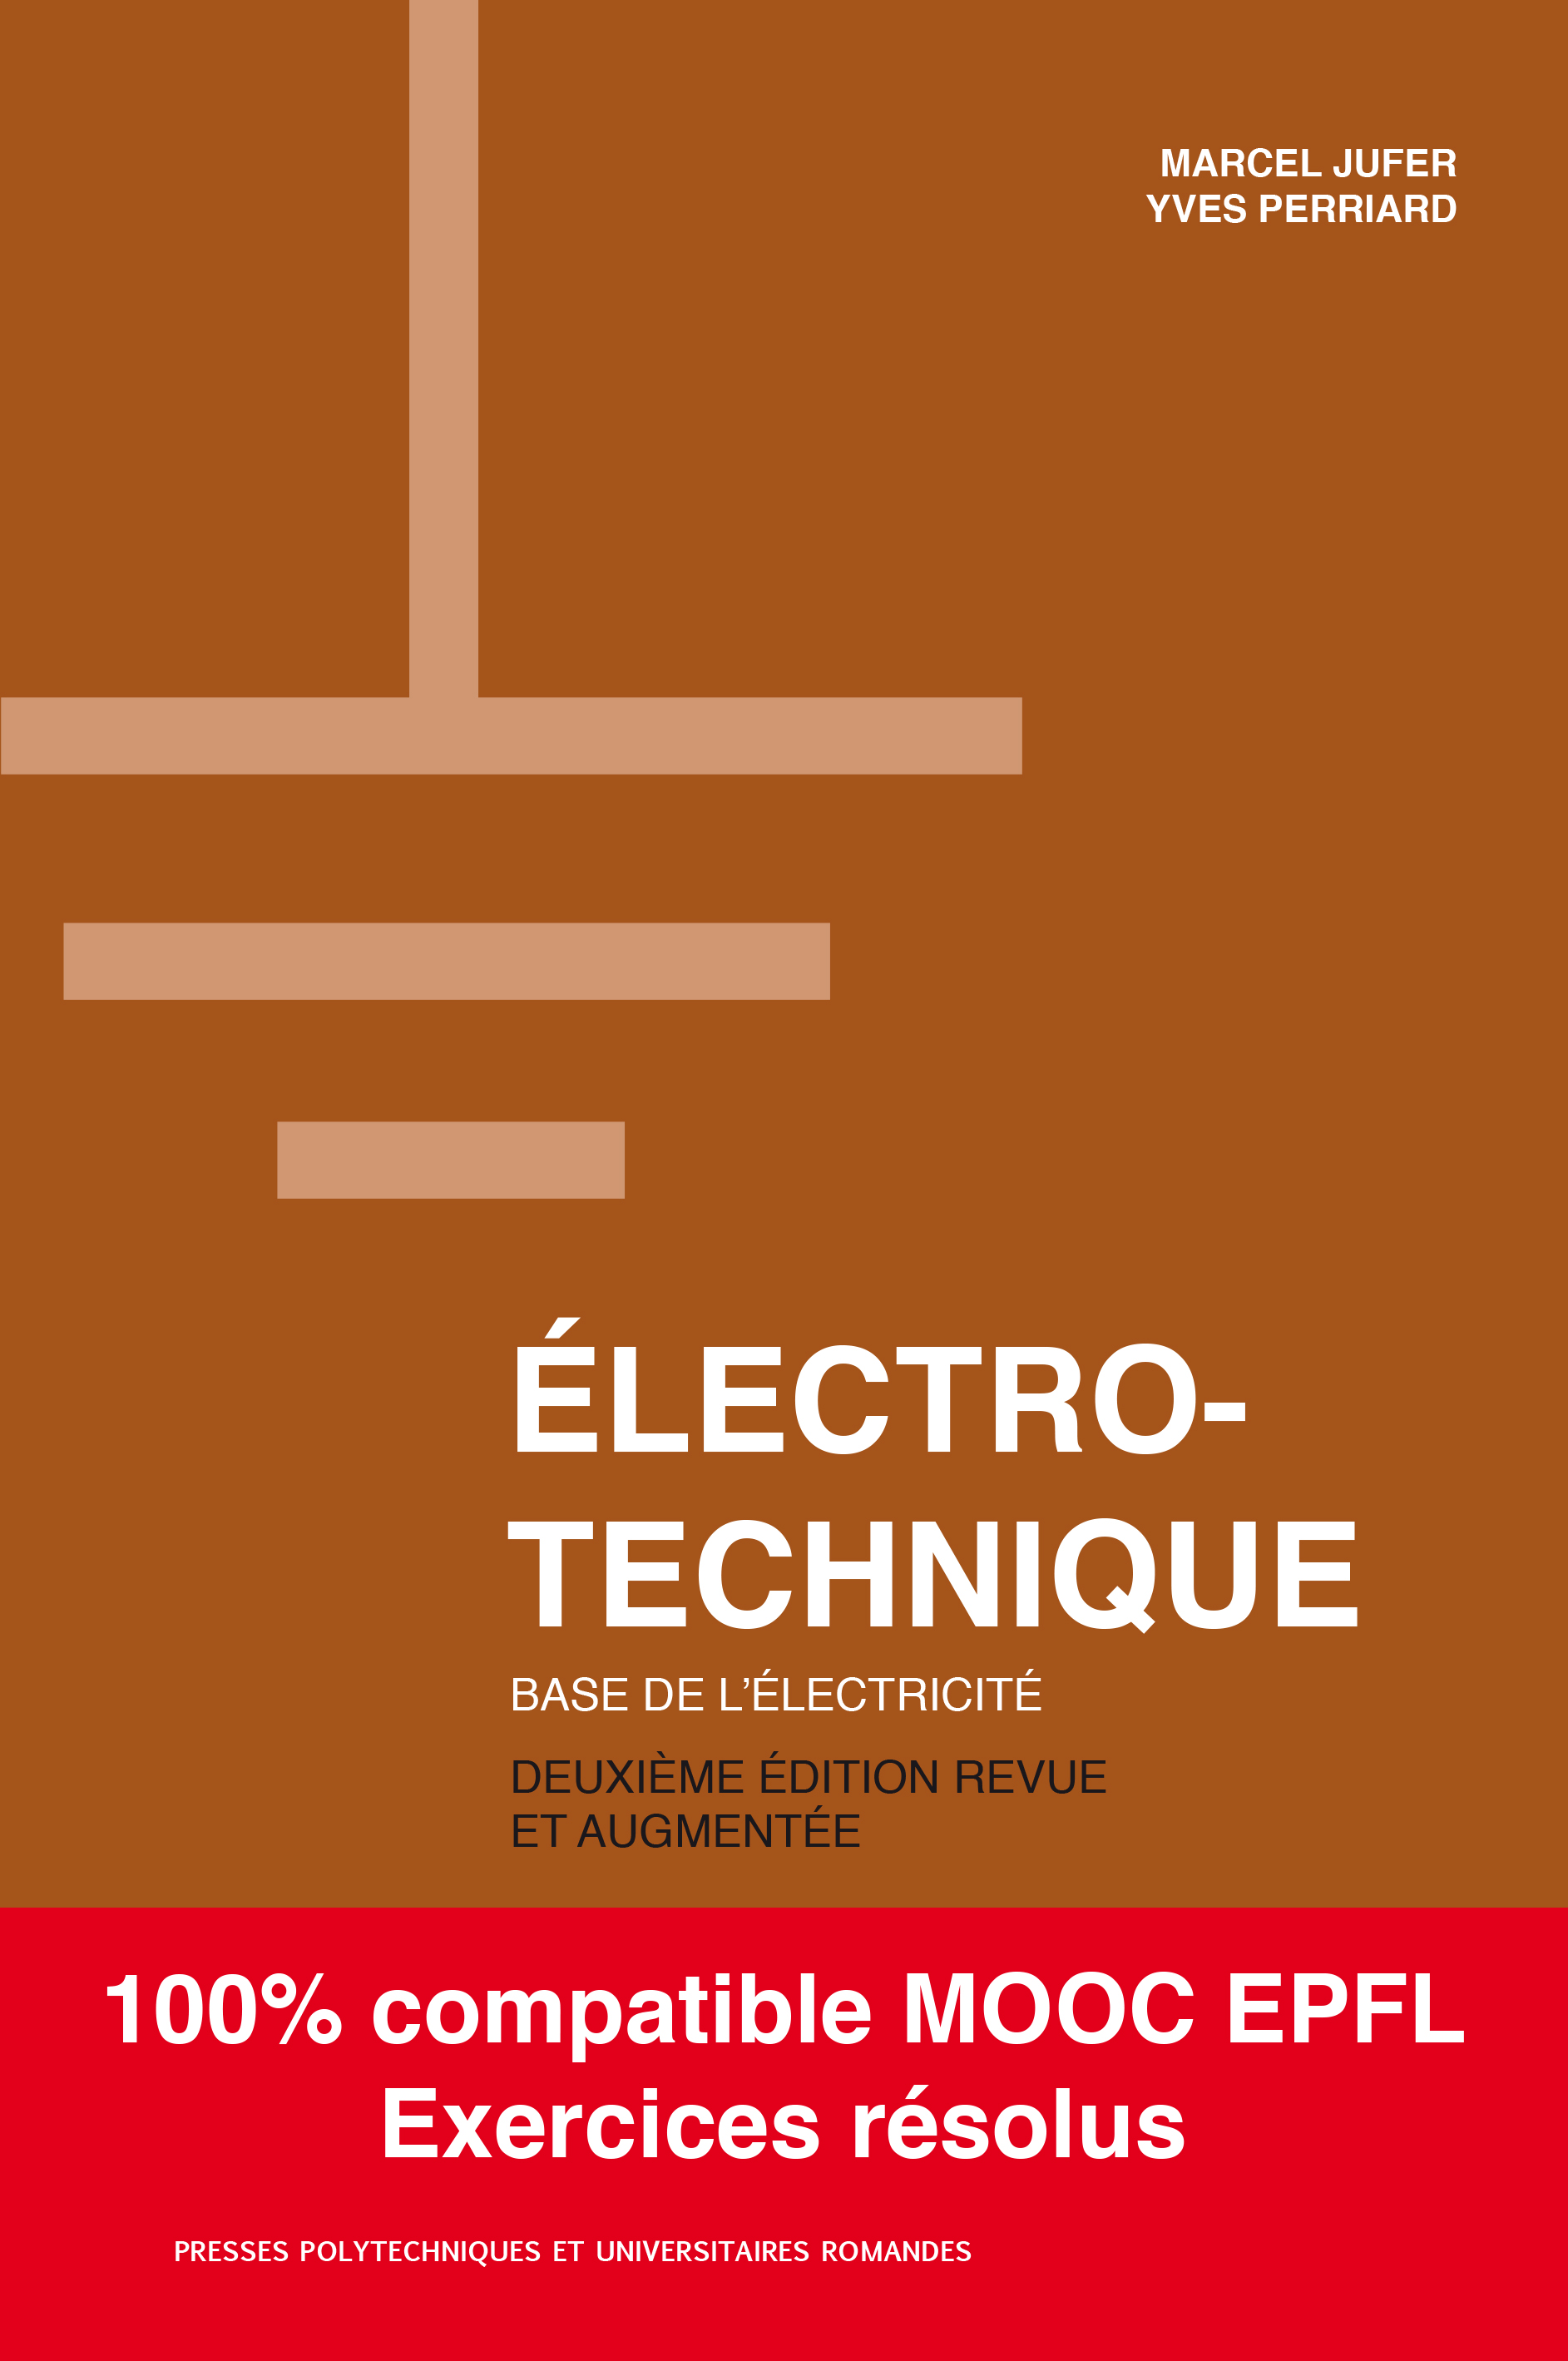 Electrotechnique  By Marcel Jufer and Yves Perriard - PPUR